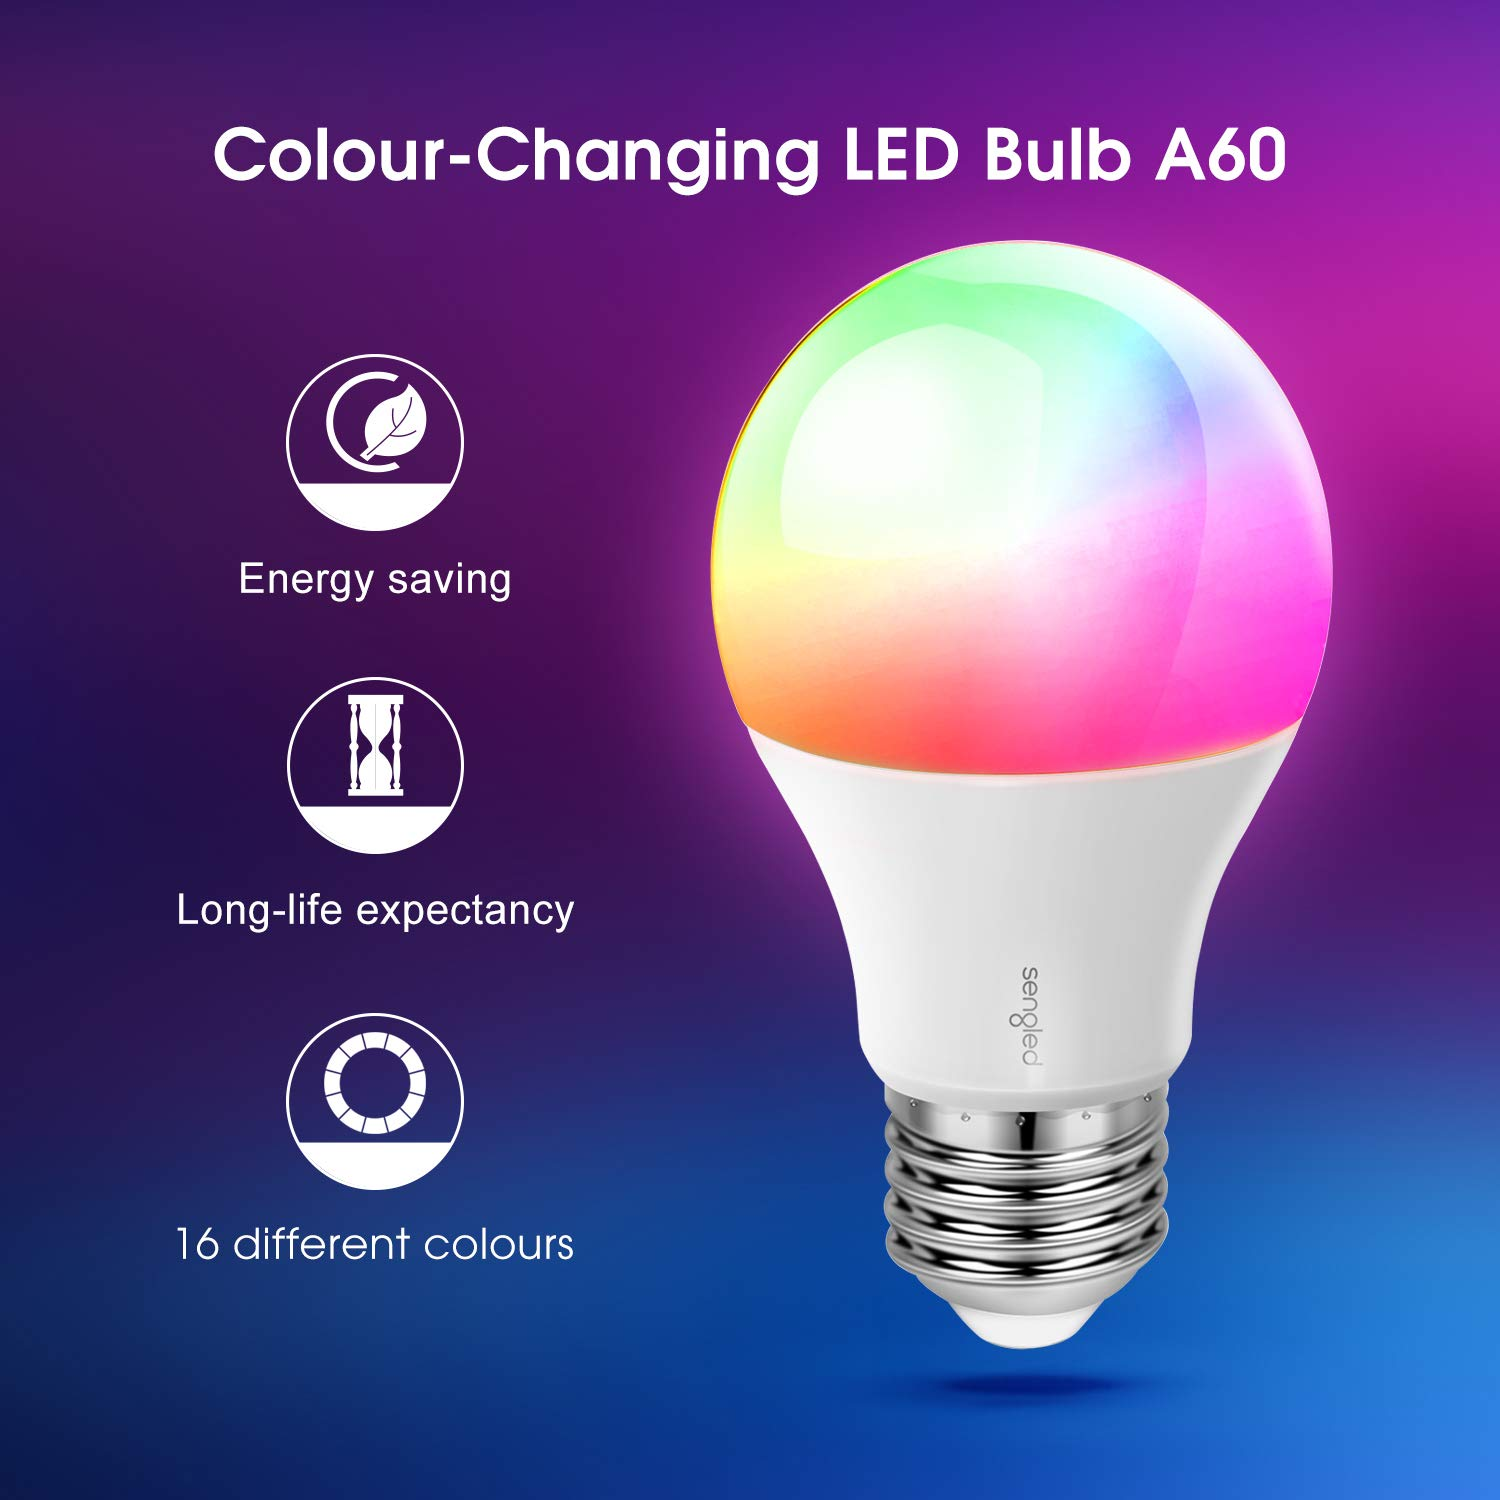 Dimmable LED Light Bulb Through Remote Control with B22 Bayonet Base,16 Mio.Colours for Christmas Party Games,2 Pack. Energy Class A + Sengled Paint Colour Changing